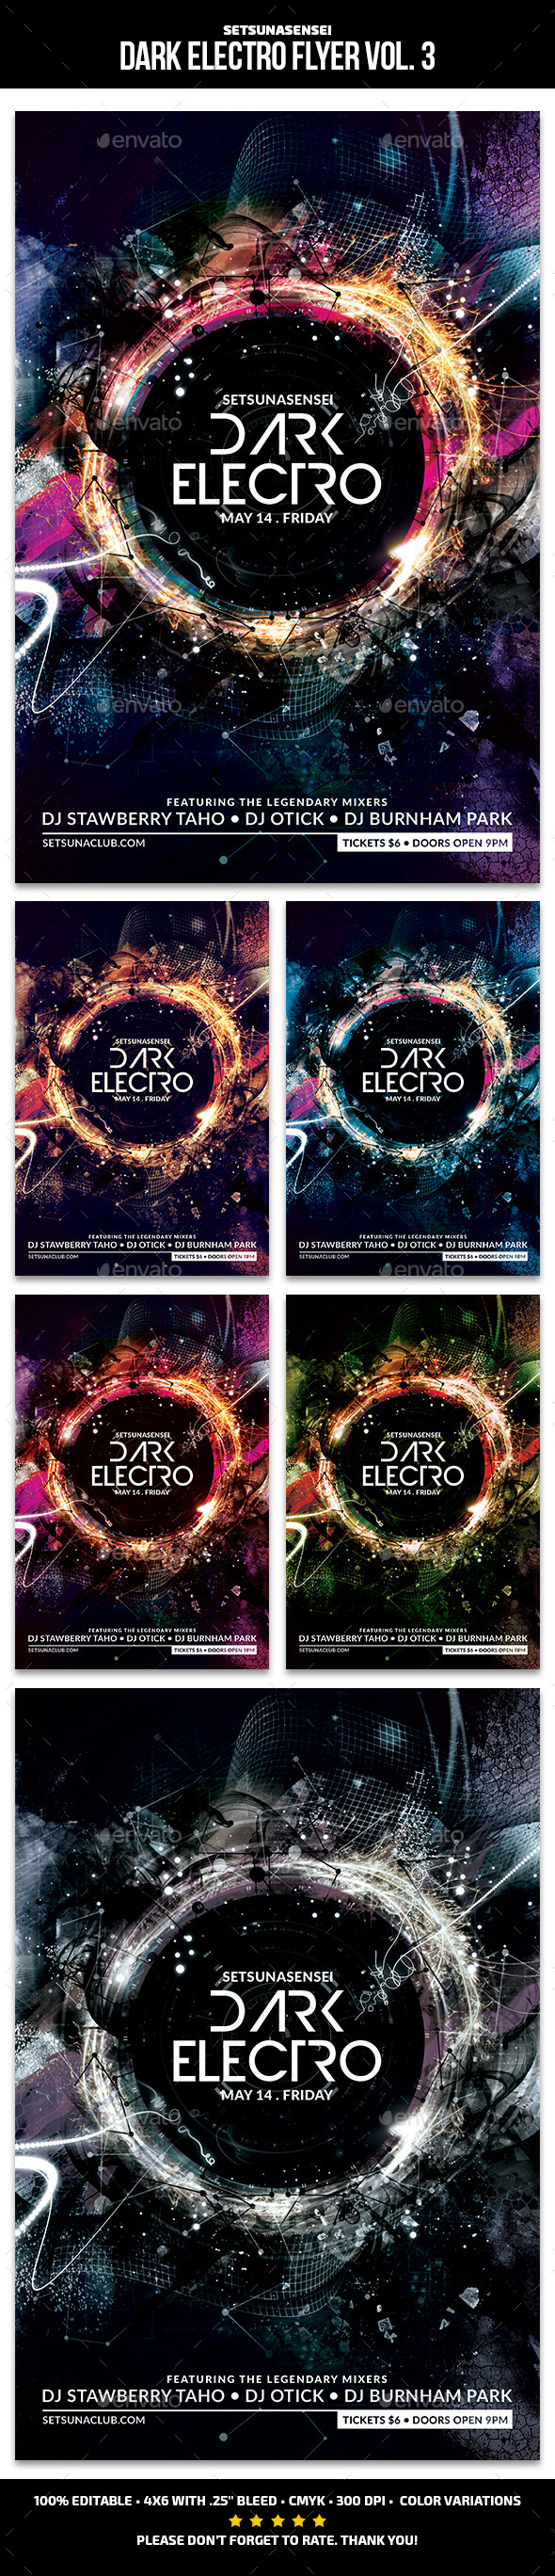 Dark Electro Flyer Vol. 3 - Clubs & Parties Events